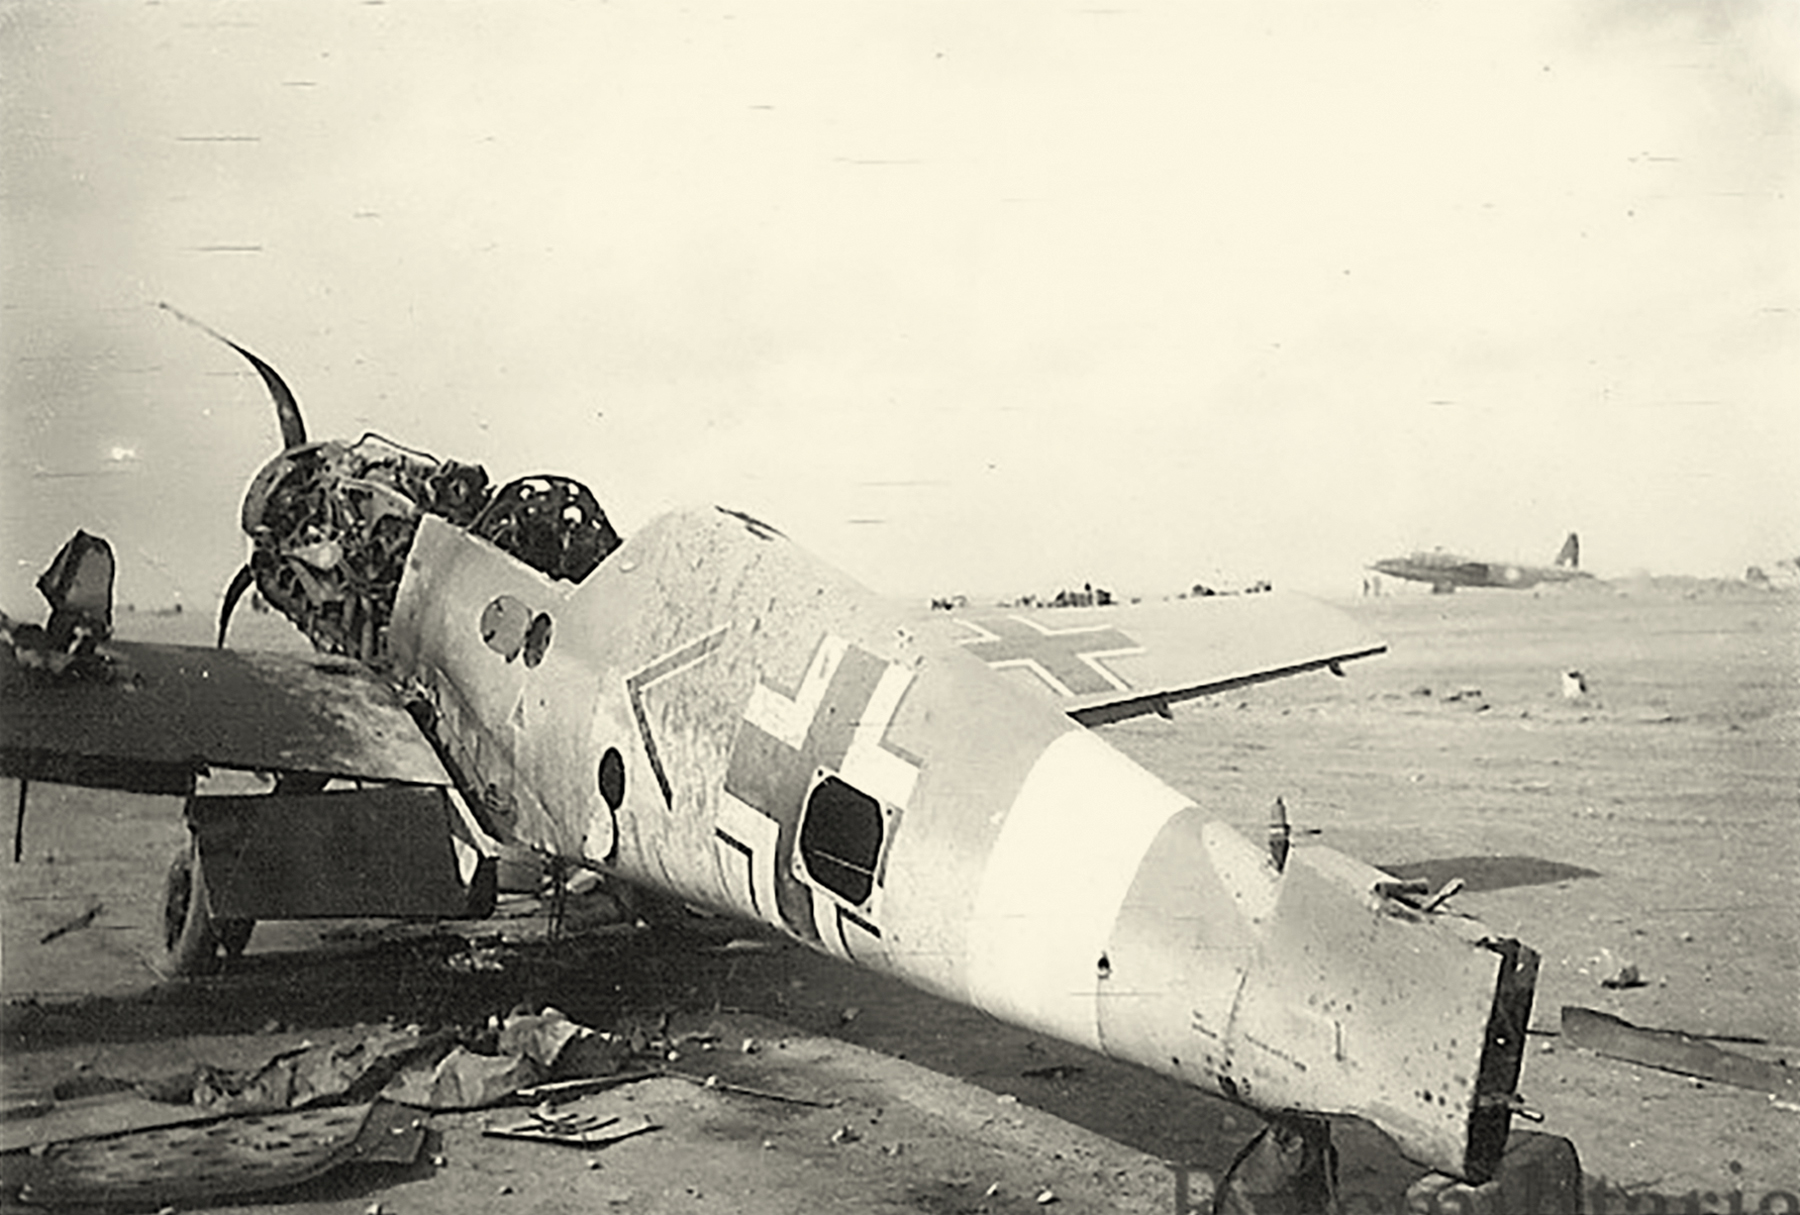 Messerschmitt Bf 109F4Trop Stab I.JG27 captured at Martuba early 1943 ebay 02